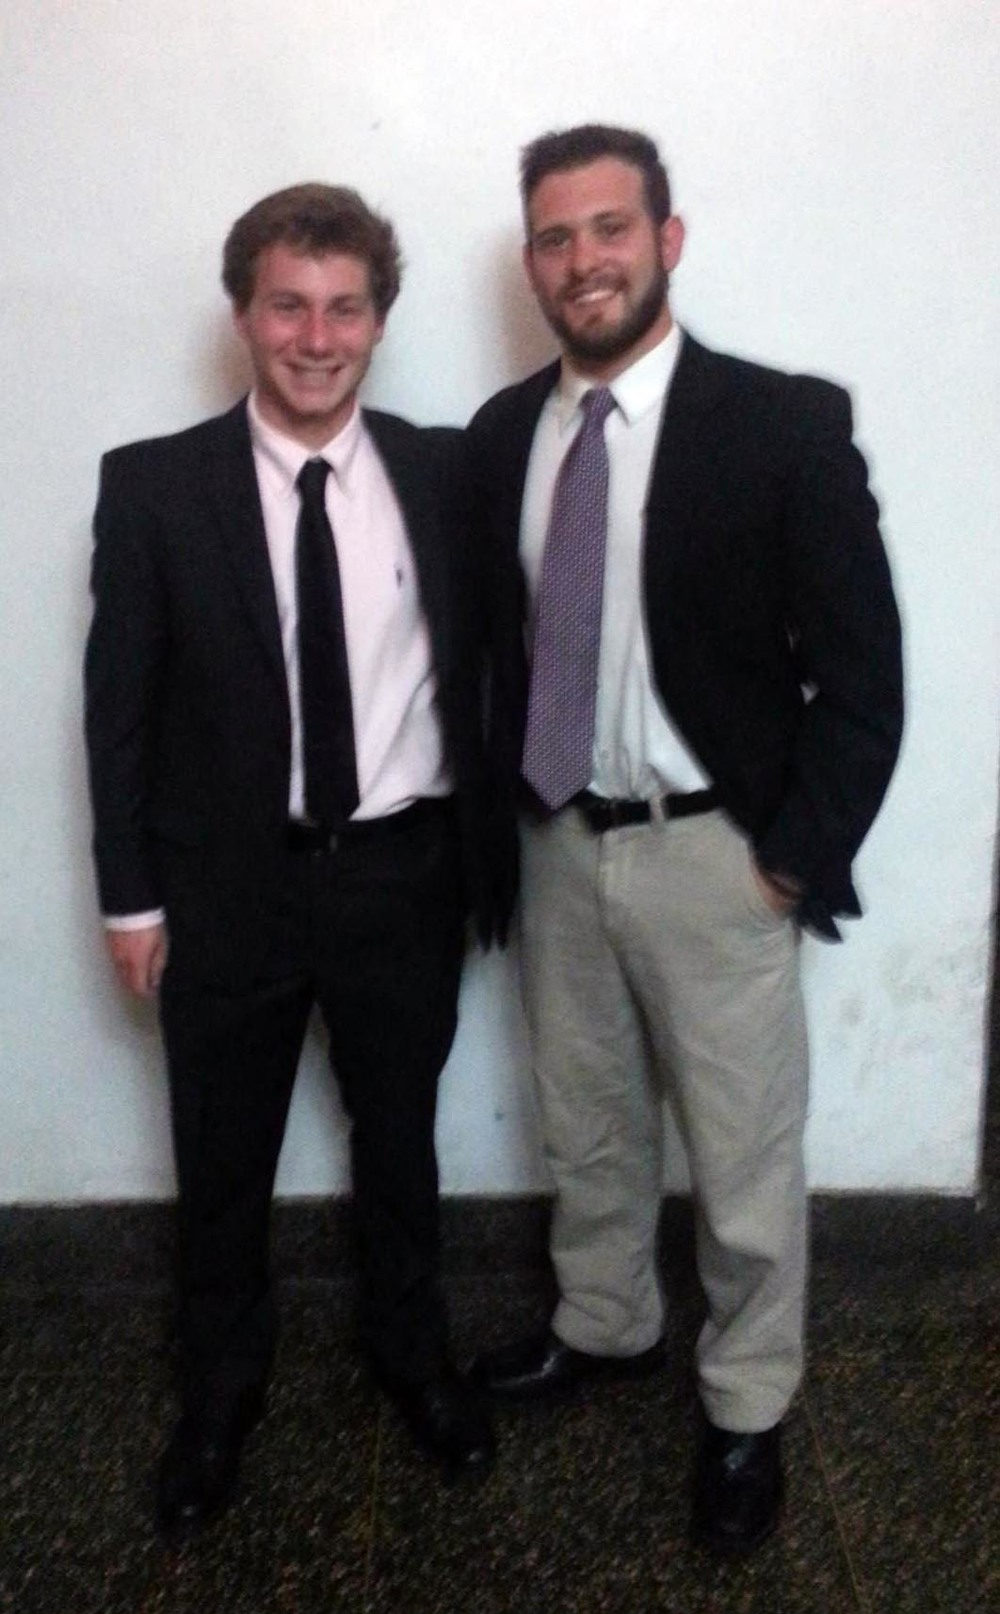 Fall 2014 - Big/Little Ceremony - Colin Kaye and Sean Curry